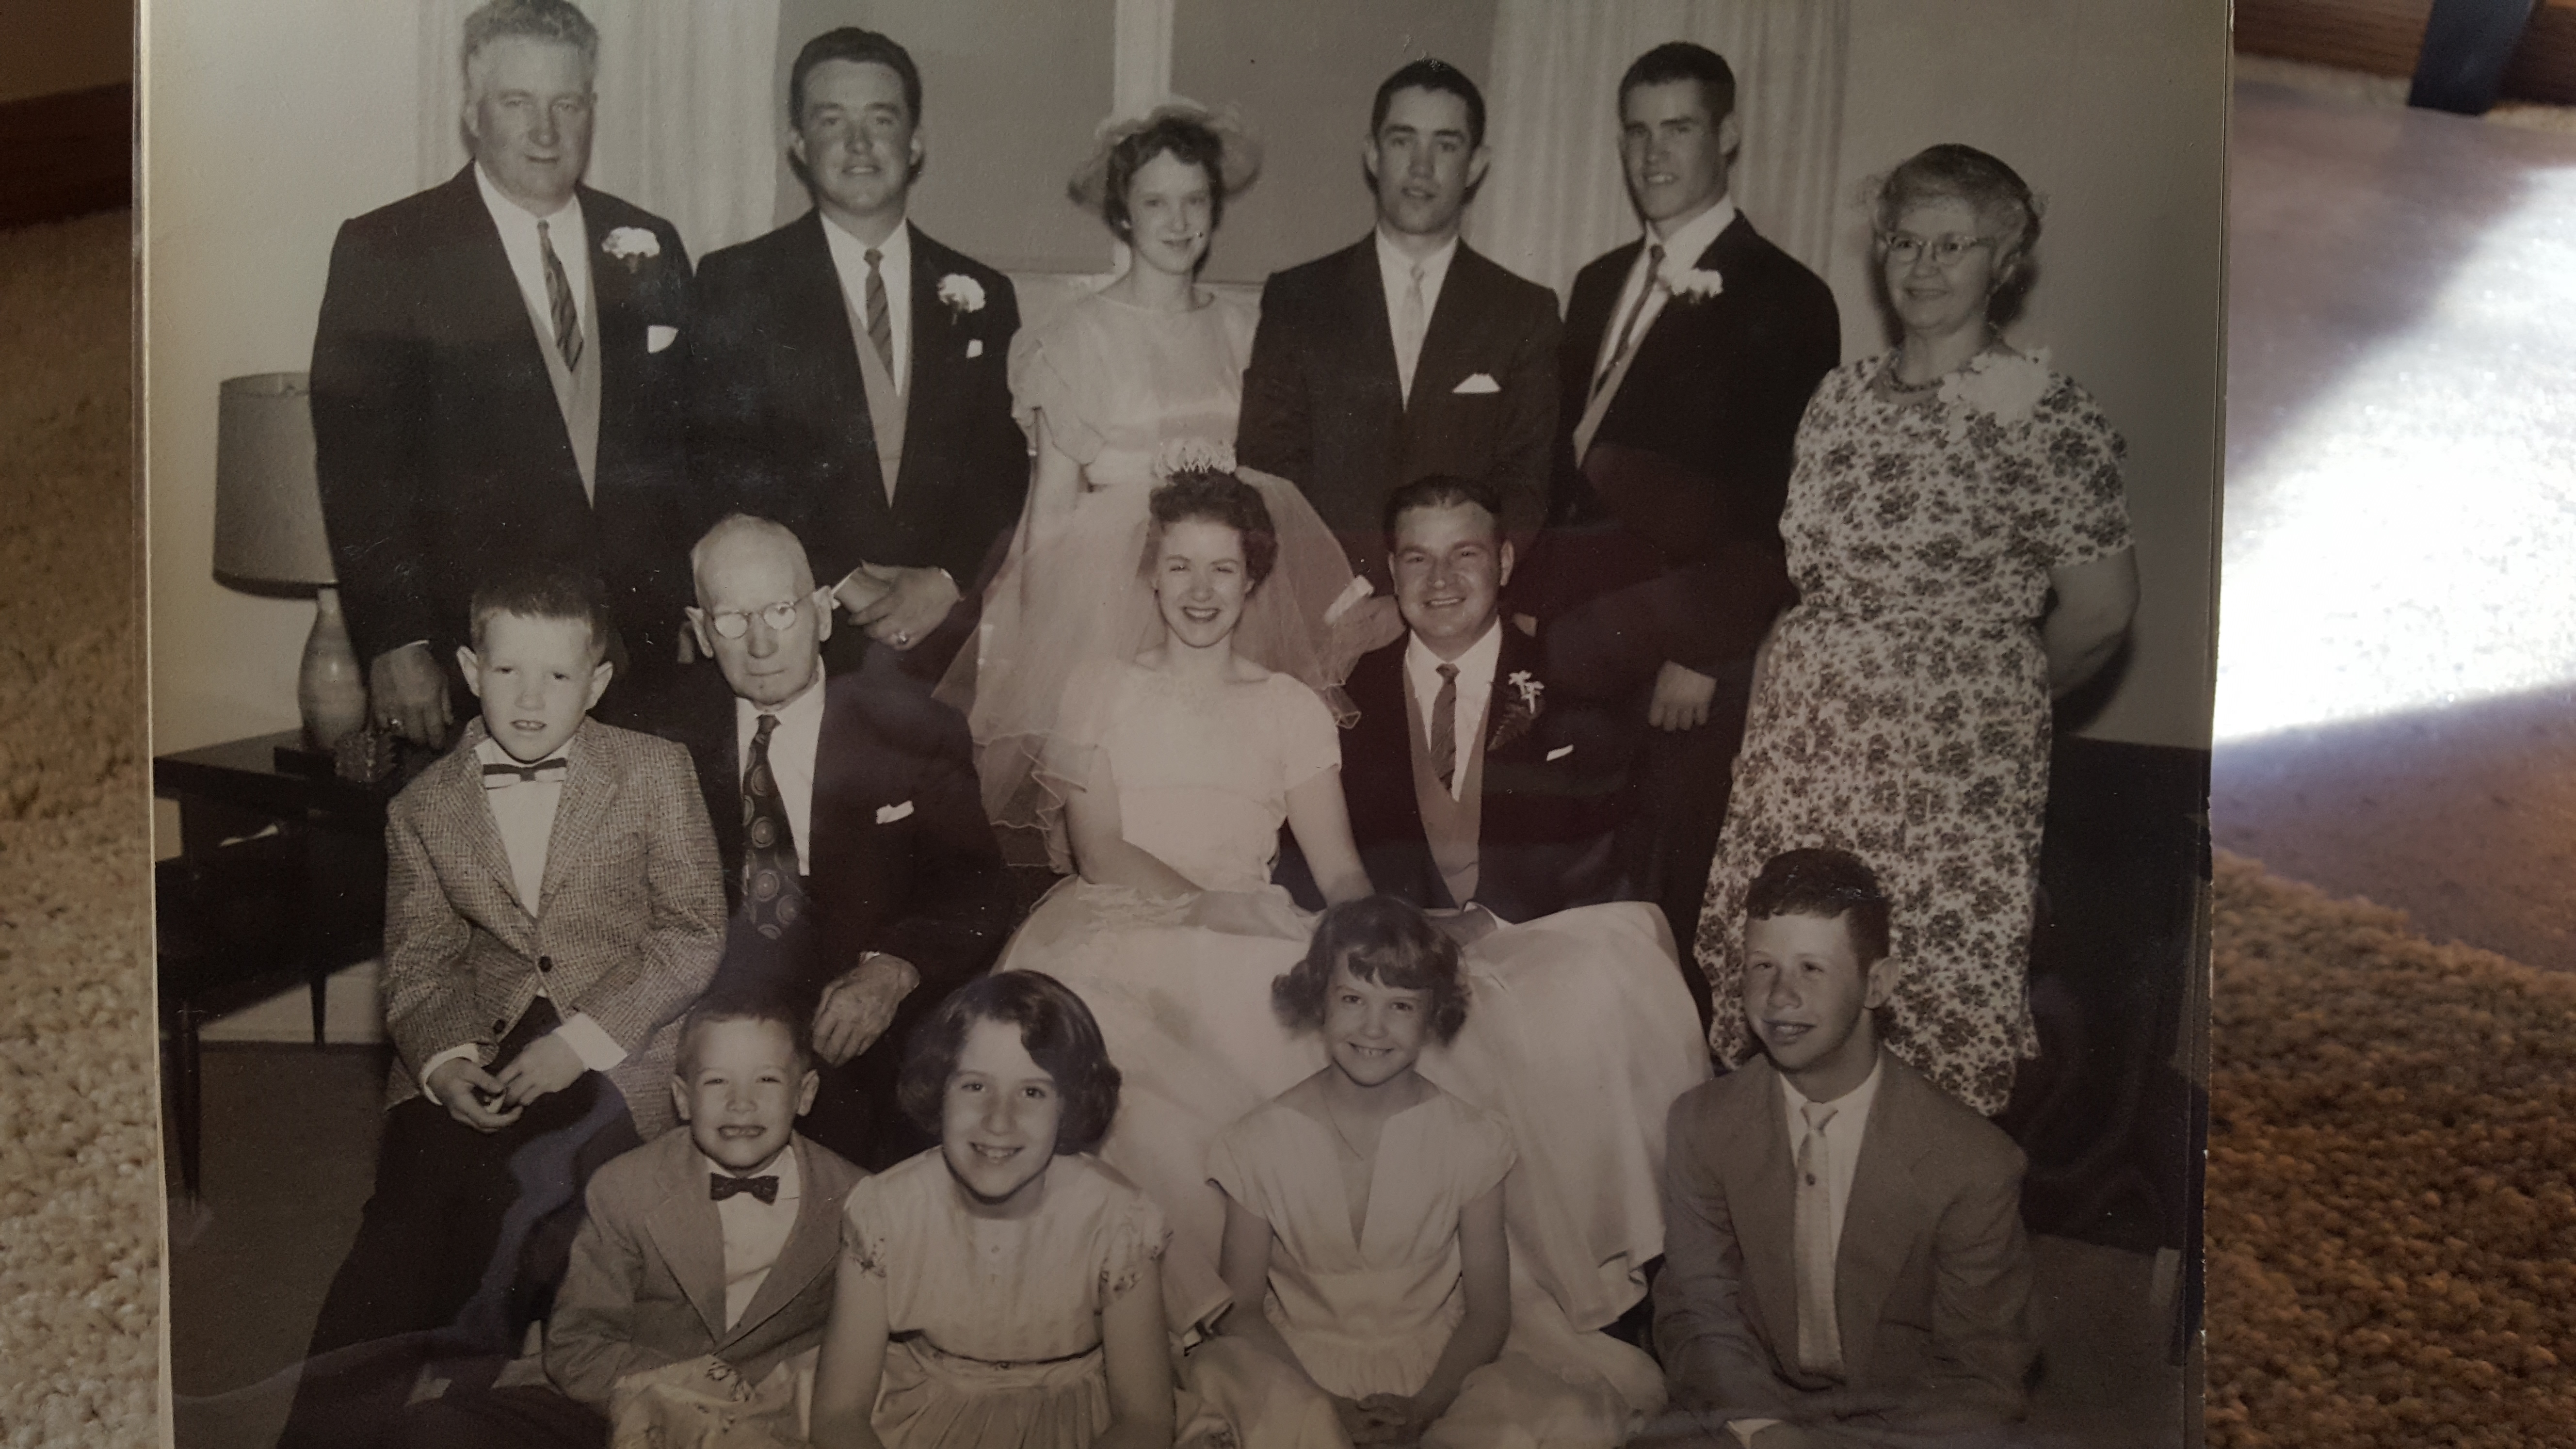 My parents wedding on May 27, 1961 in Richfield, MN.   Uncle Tony was almost 7 yrs old.  Enjoy the memories!